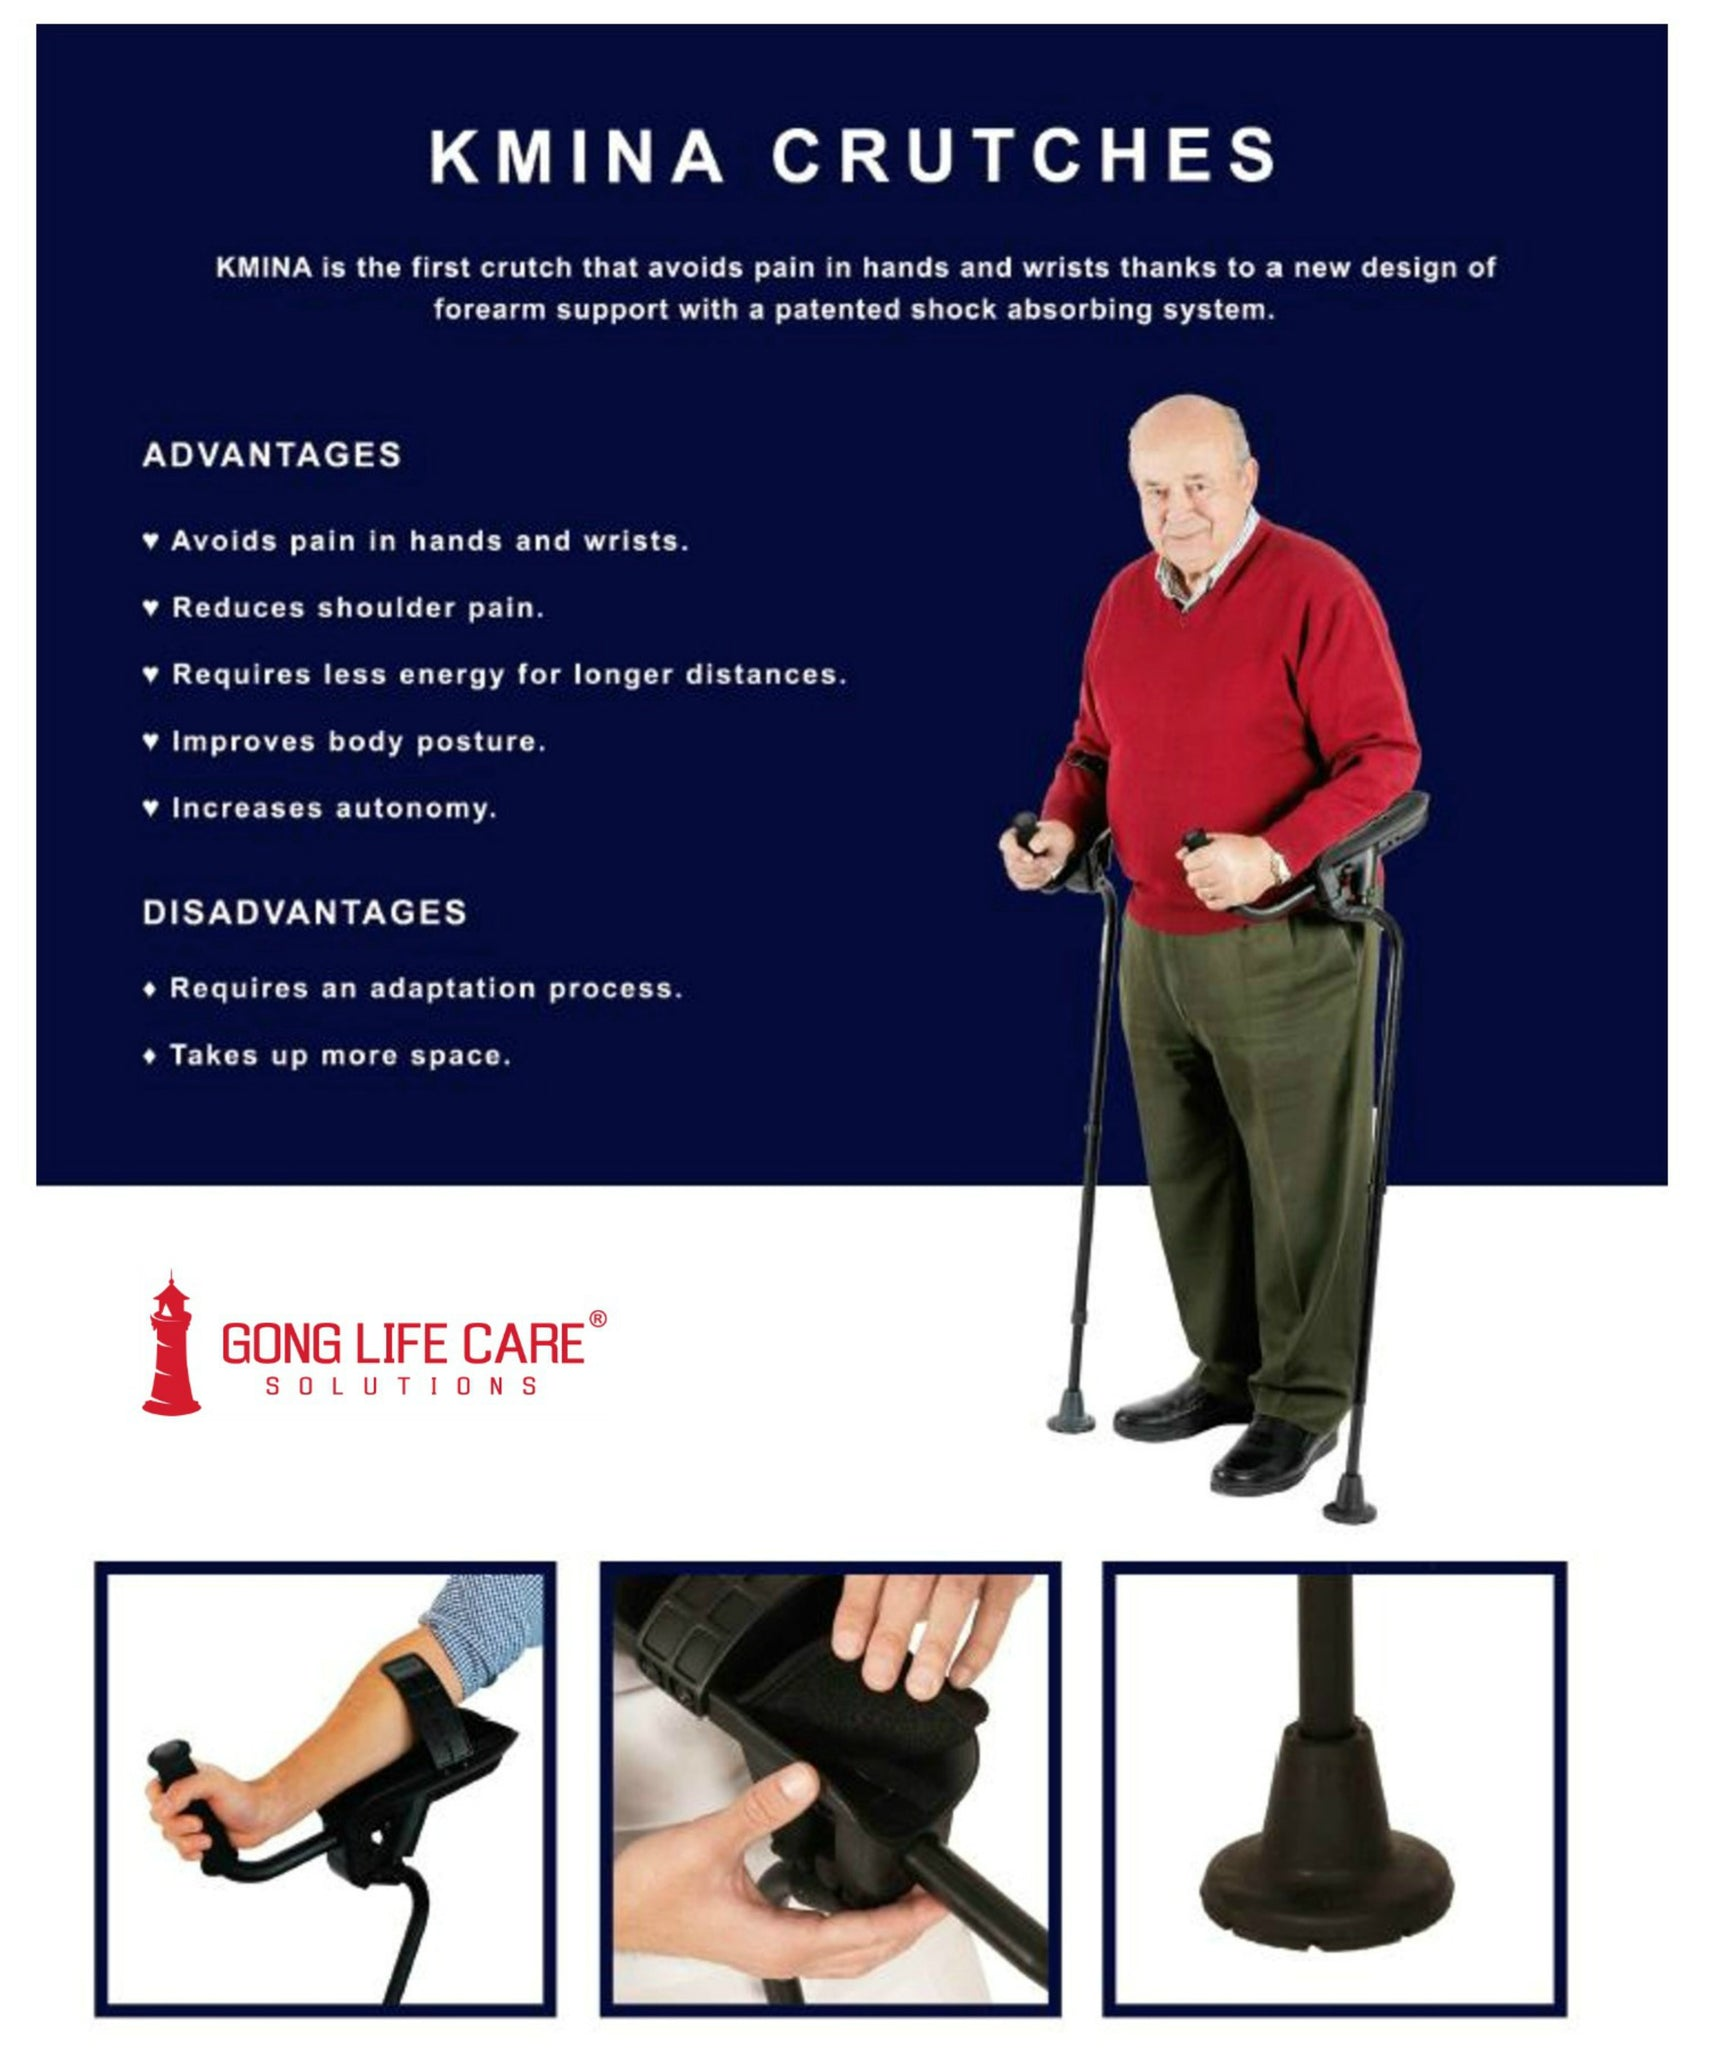 Gong Life Care Solutions - KMINA Crutches